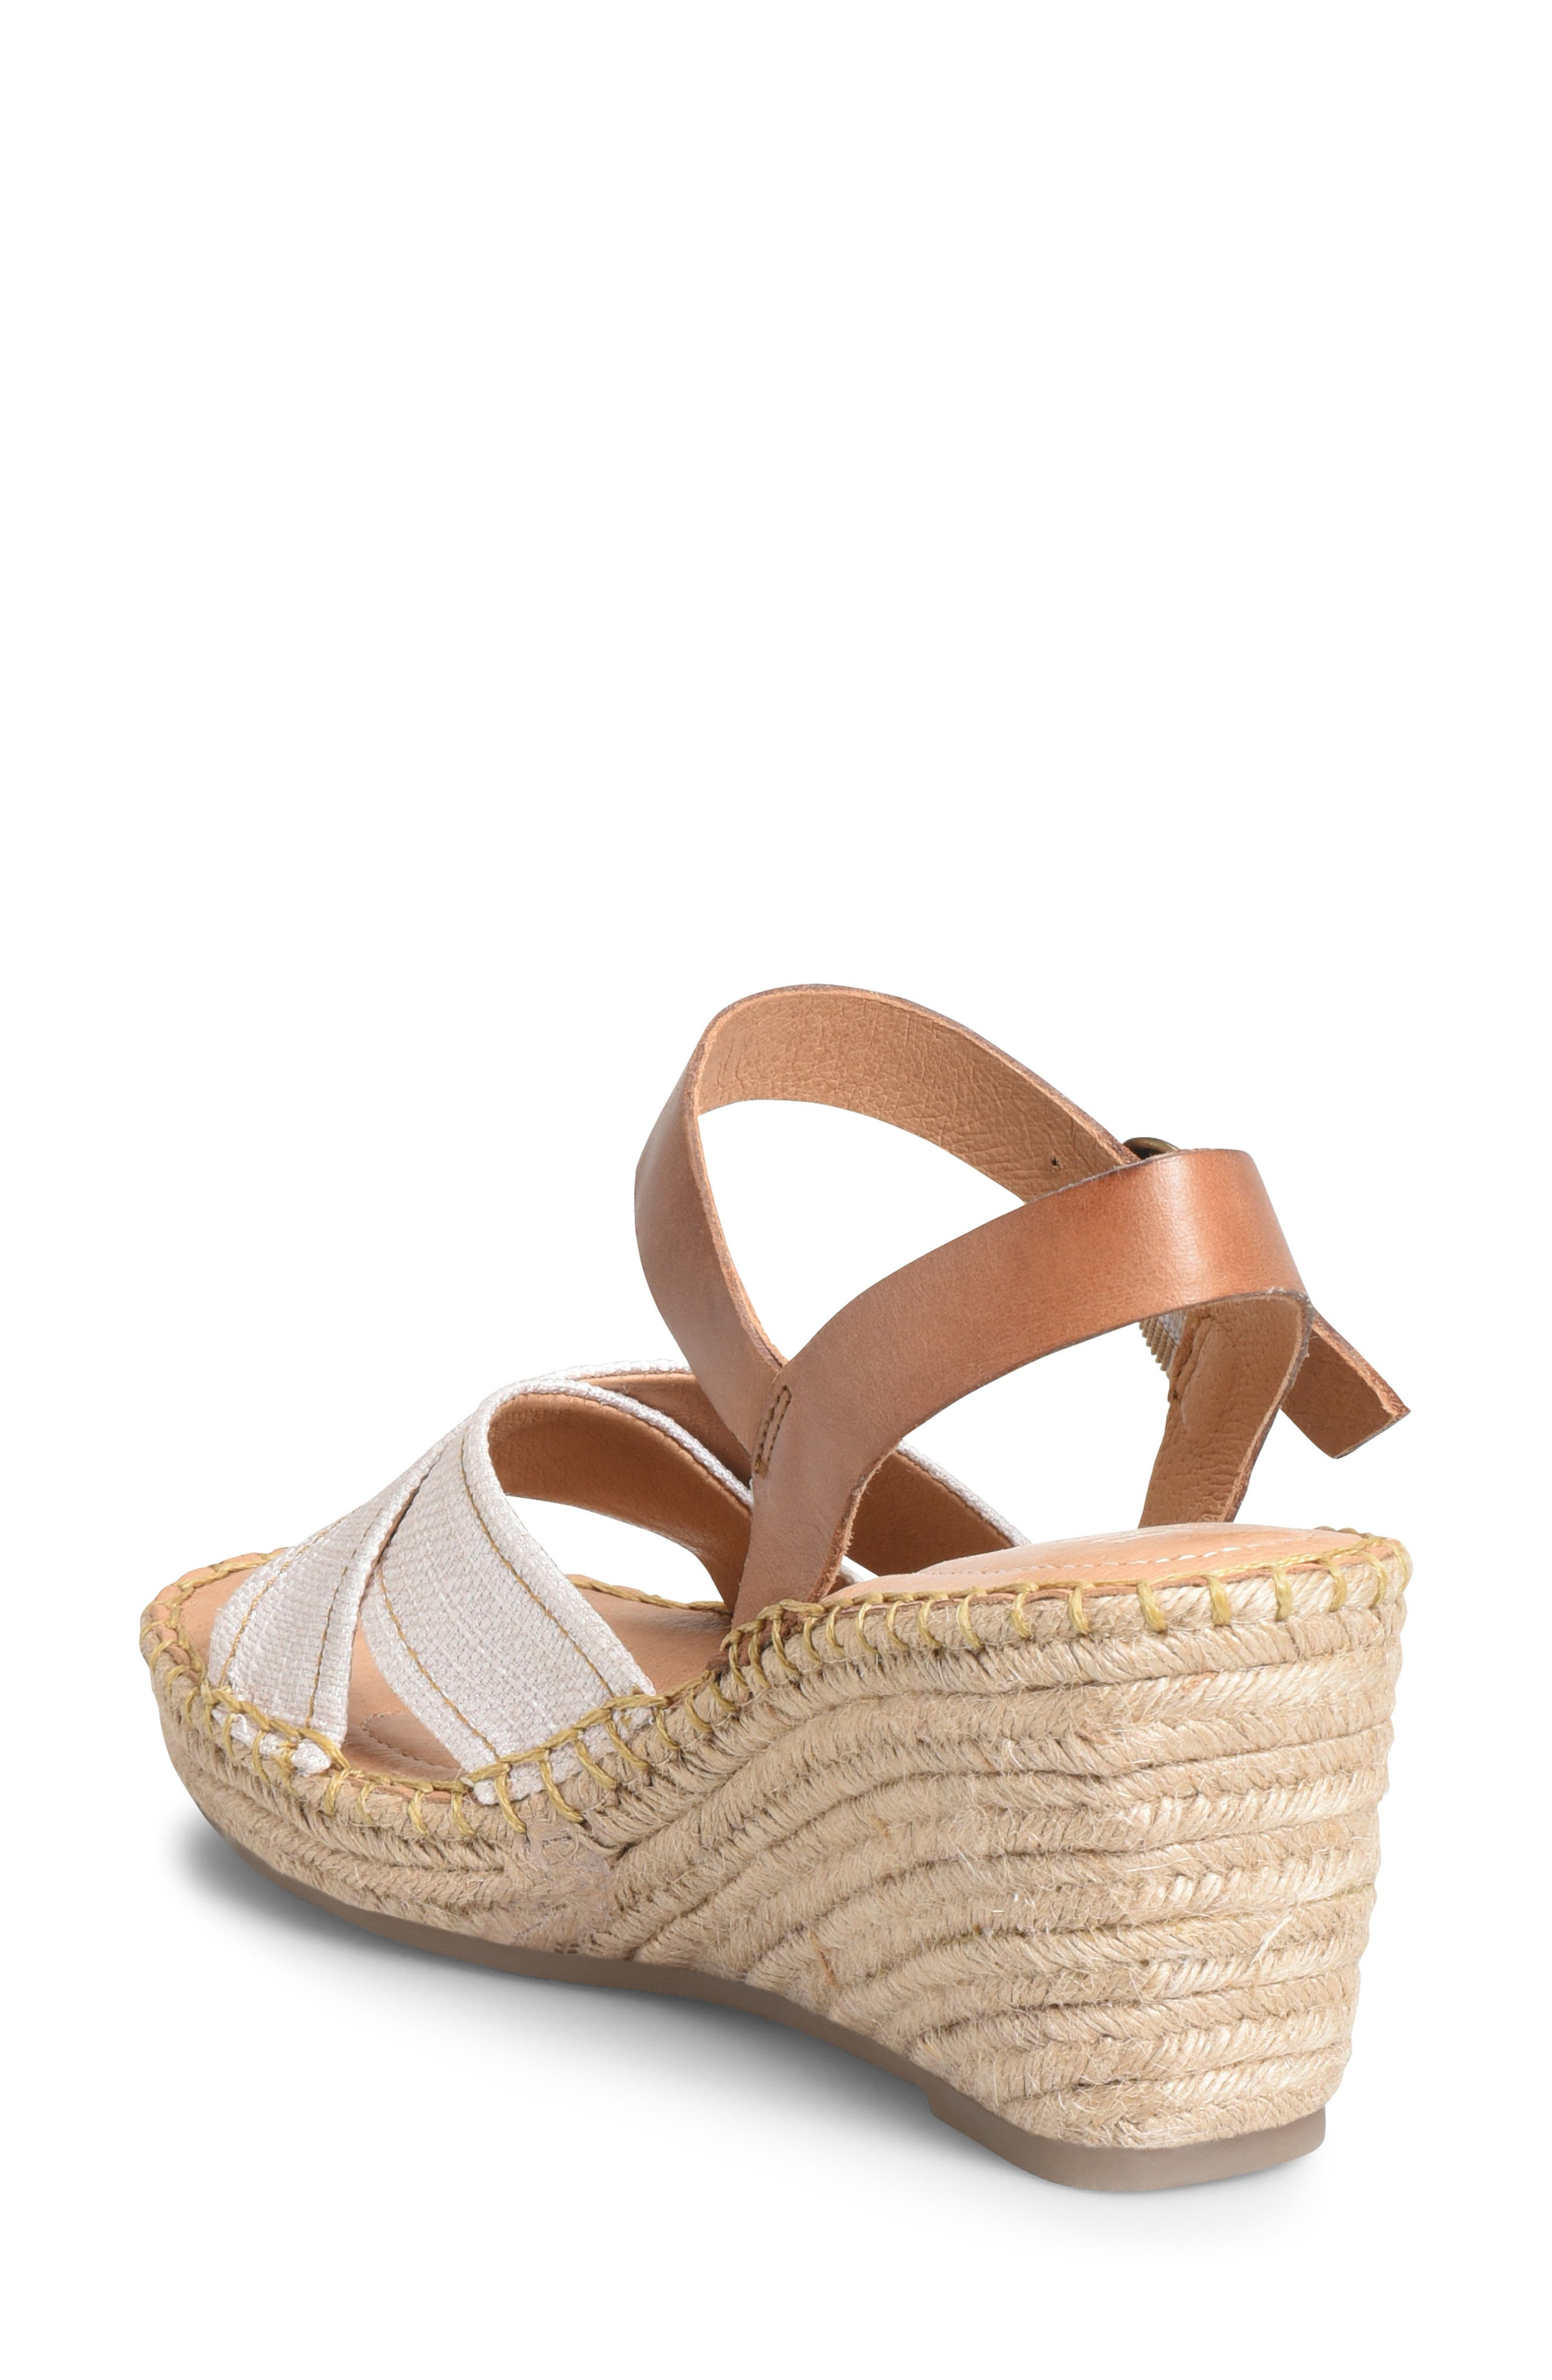 ,                             Payette Wedge Sandal,                             Alternate thumbnail 2, color,                             NATURAL/ TAN LEATHER